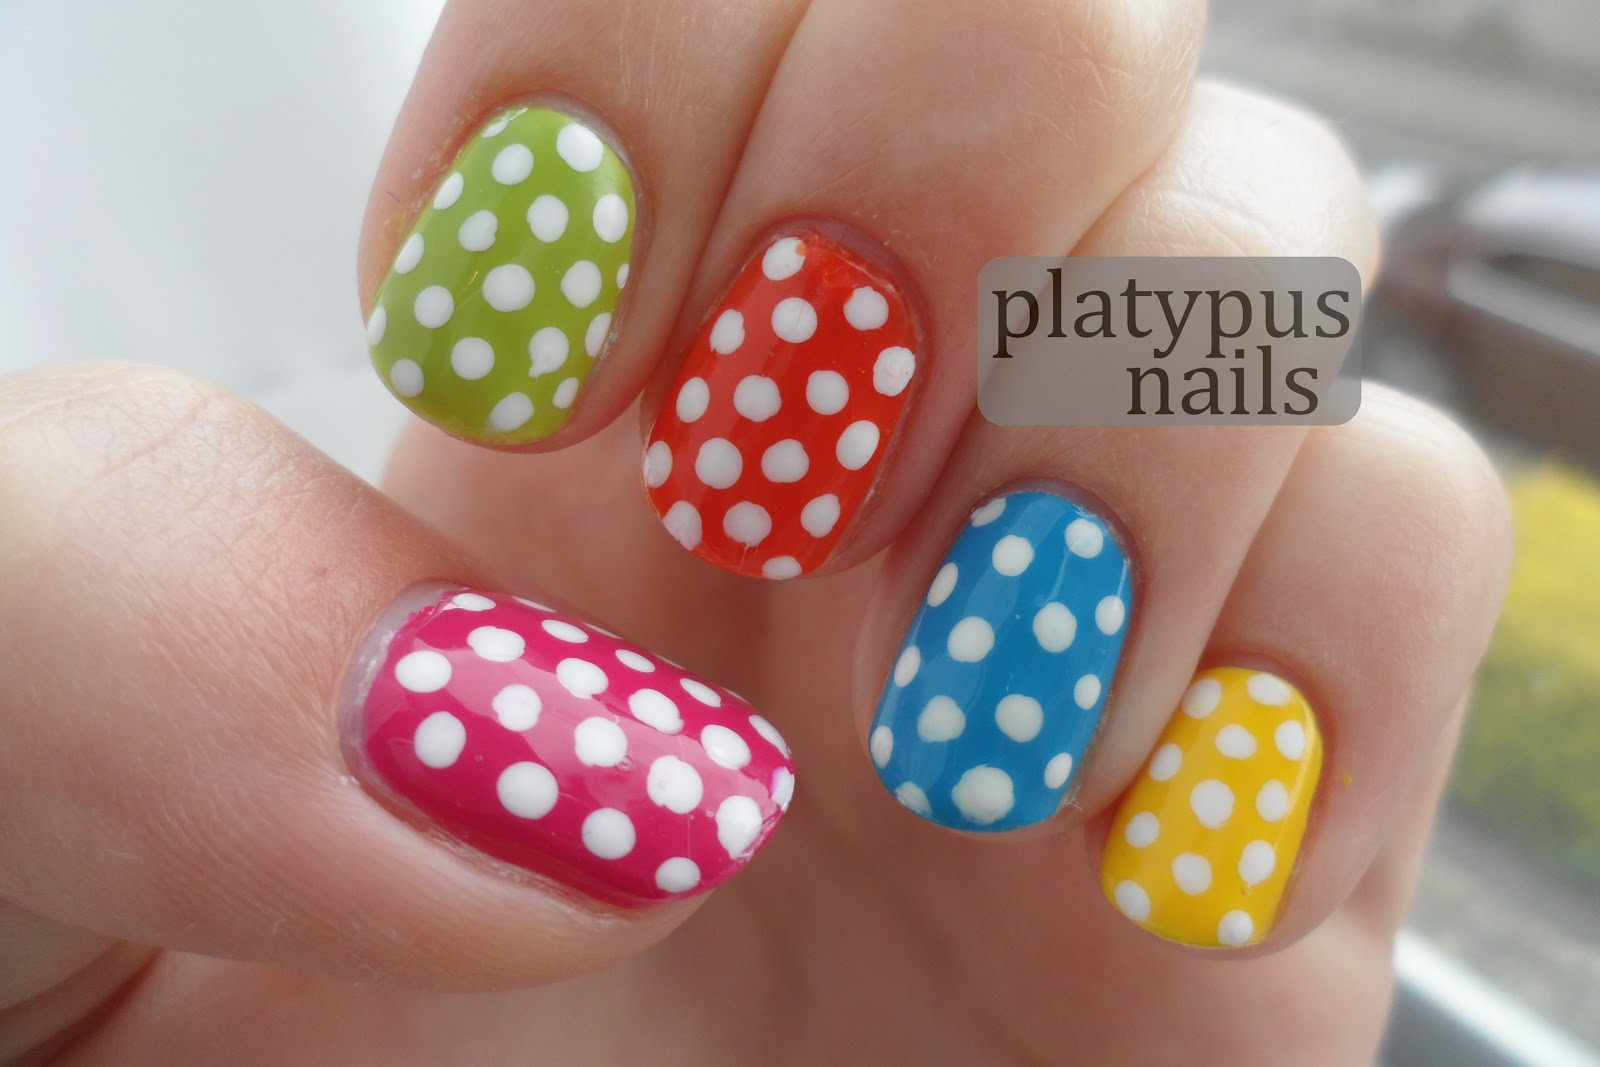 it's a picture of simple polka dots nail designs